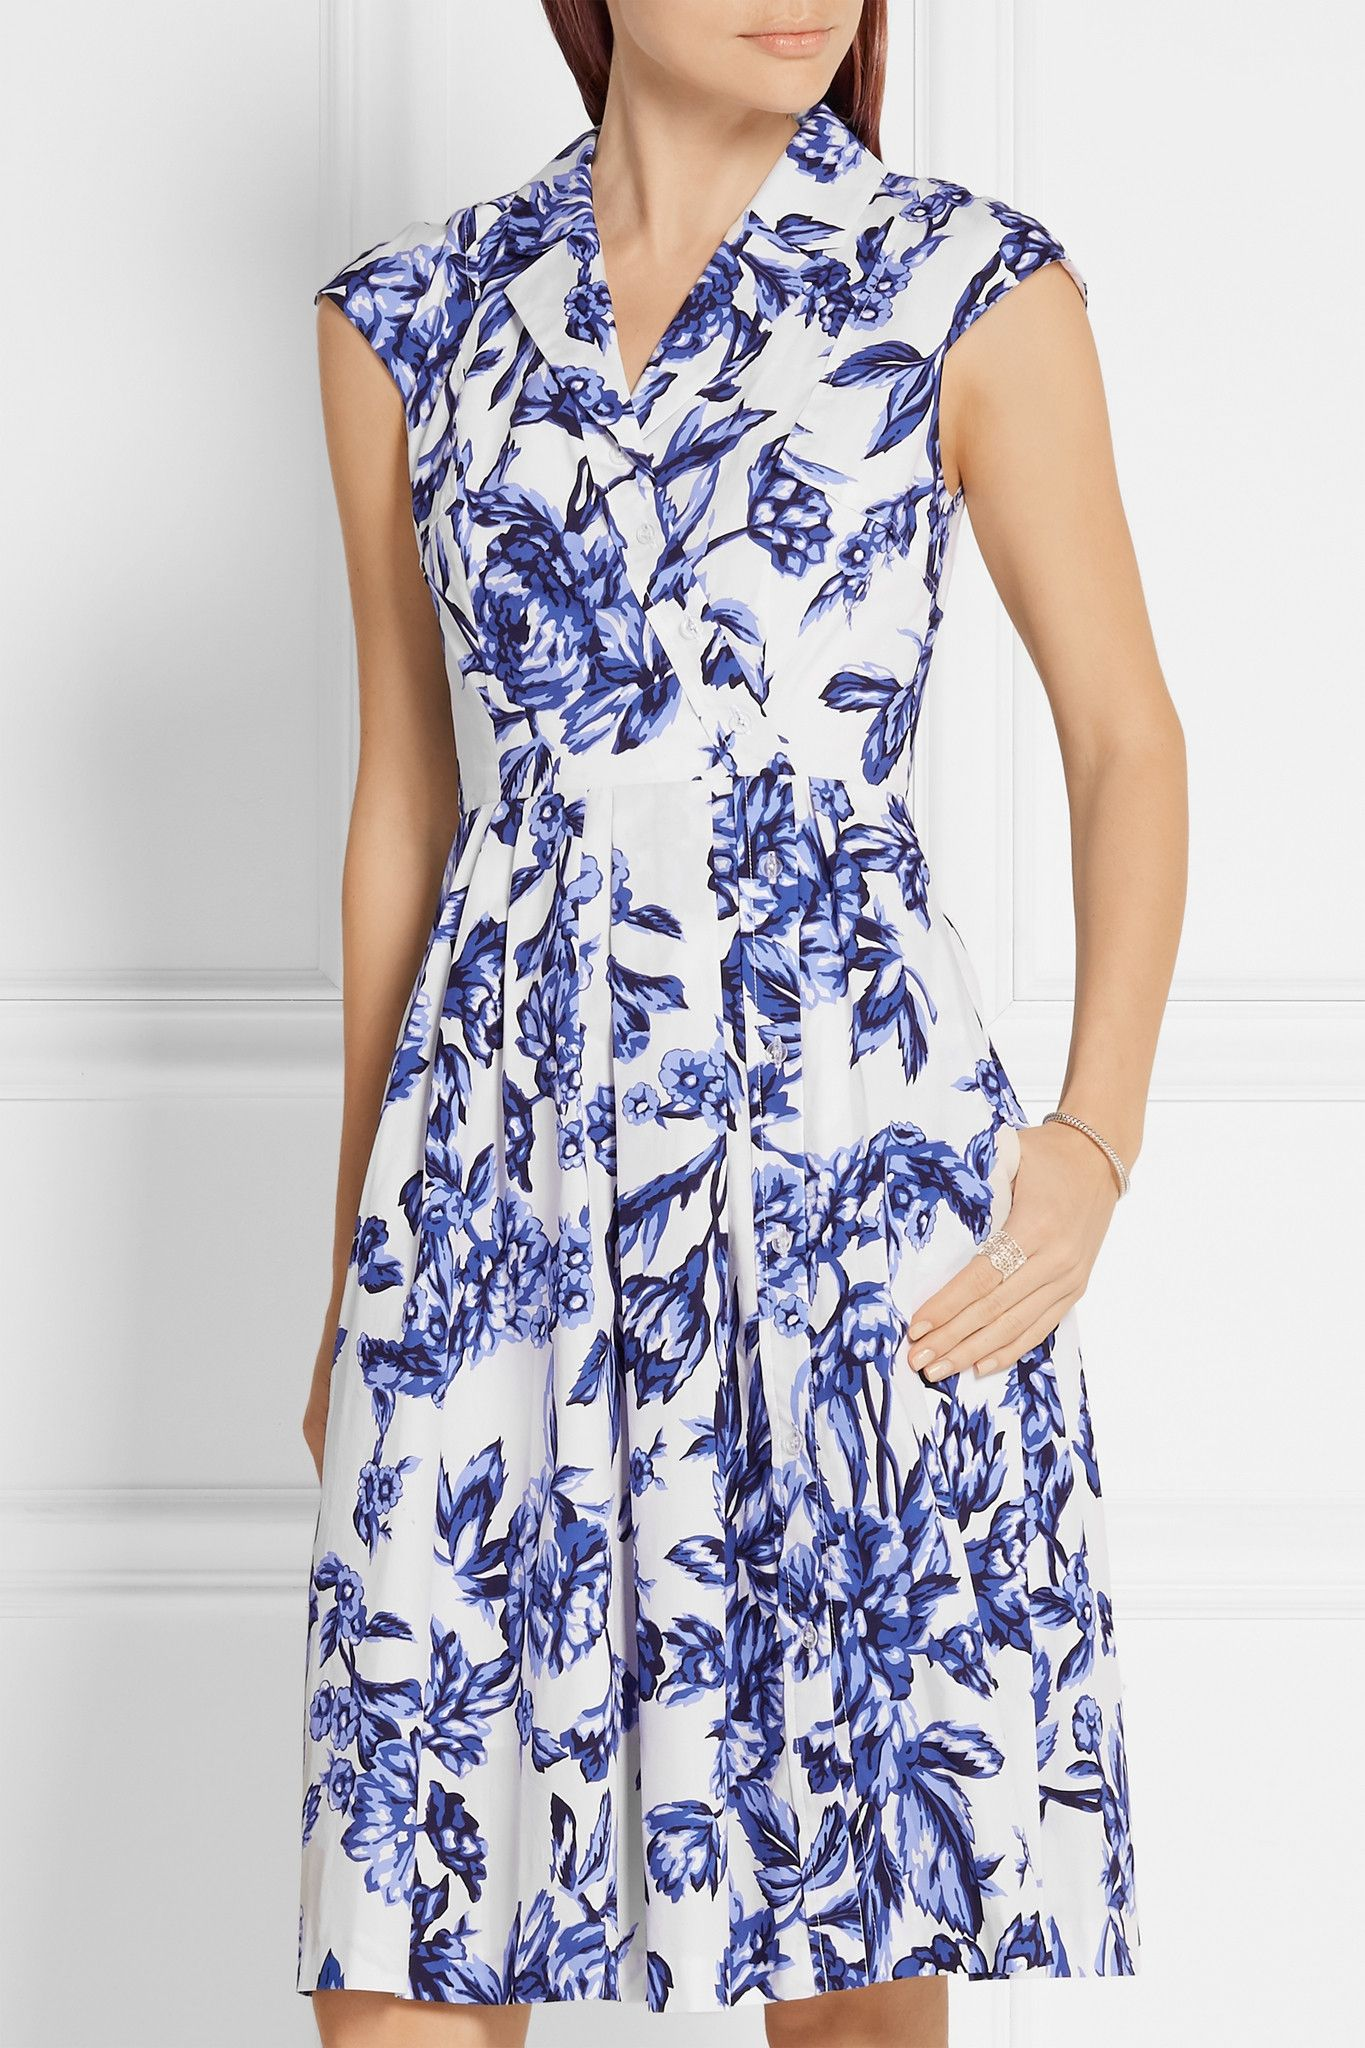 Lela rose cotton dress